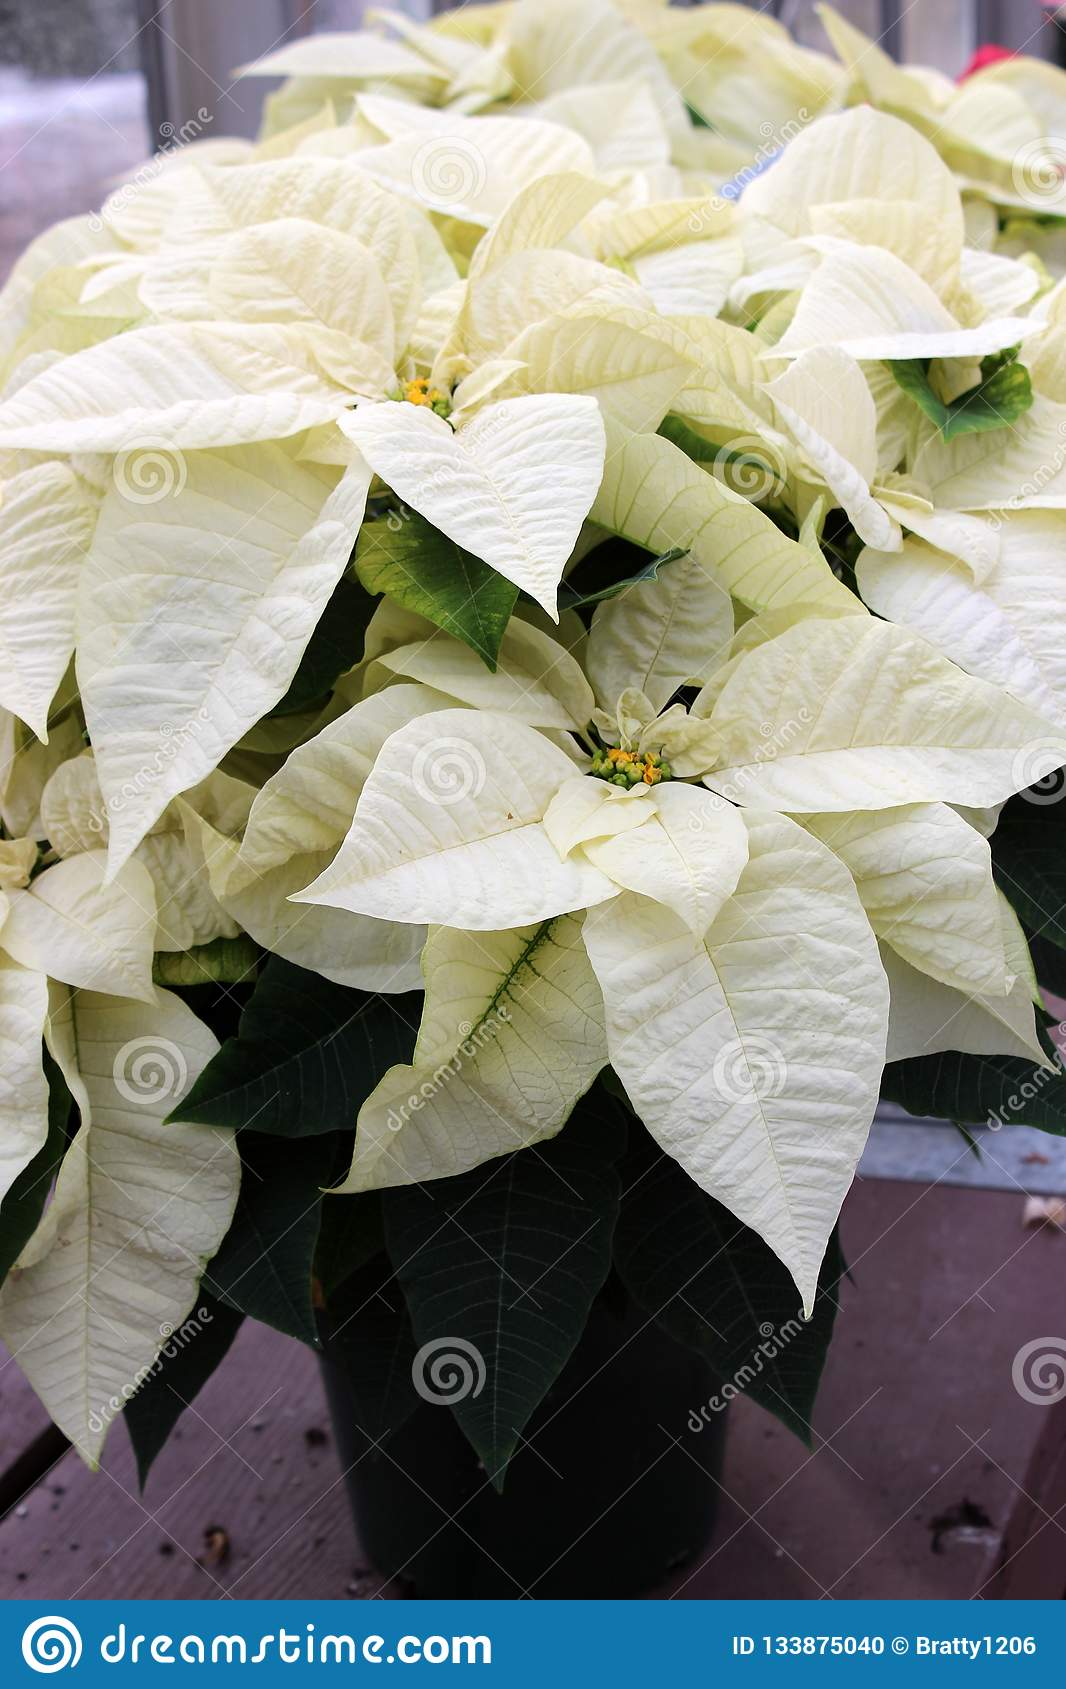 Large White Leaves And Tiny Yellow Flowers On Potted Poinsettia